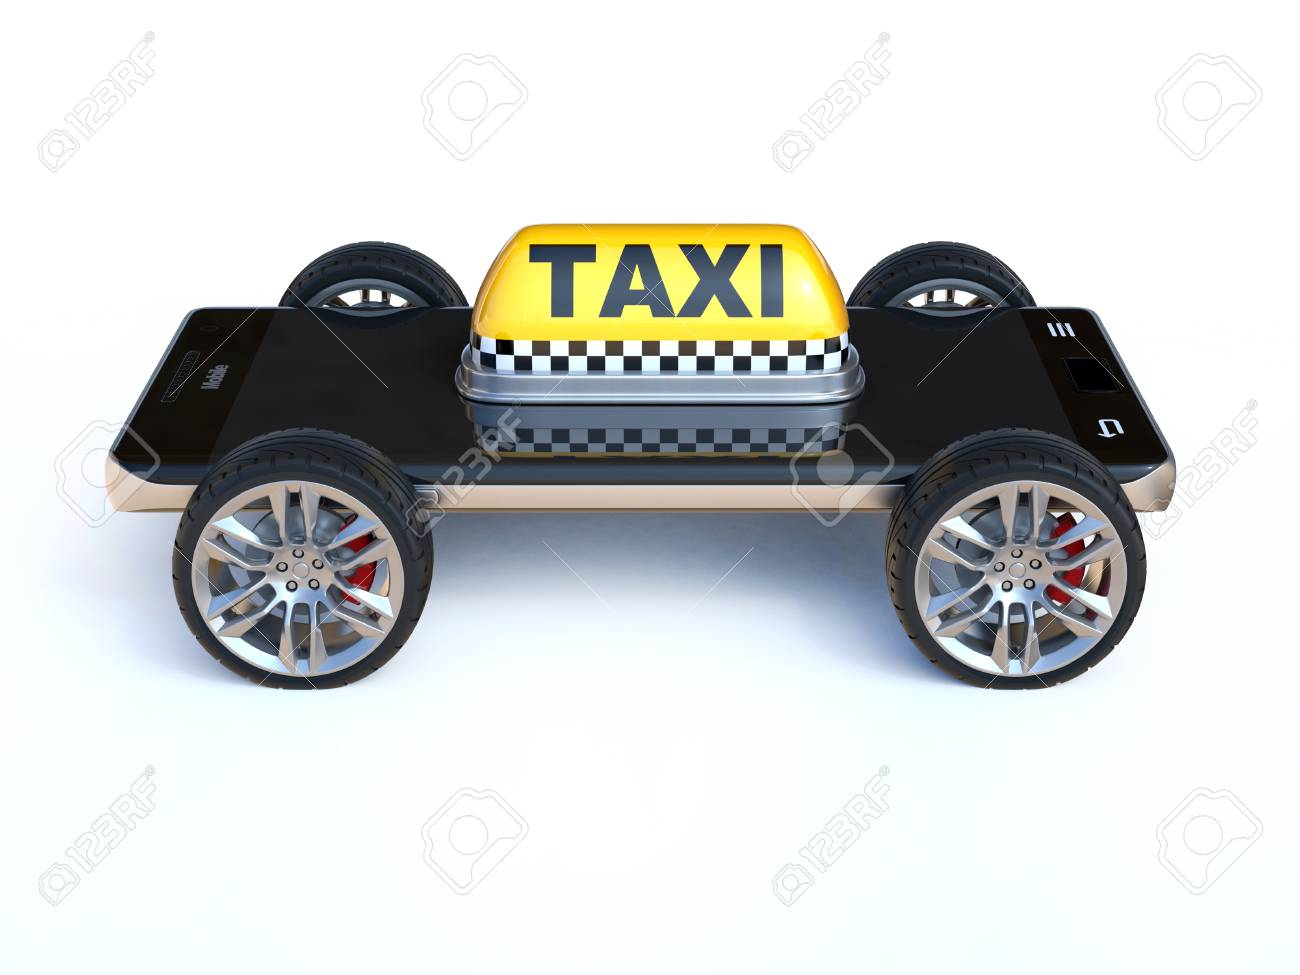 Mobile Phone With Taxi Sign And Wheels Taxi App On A White